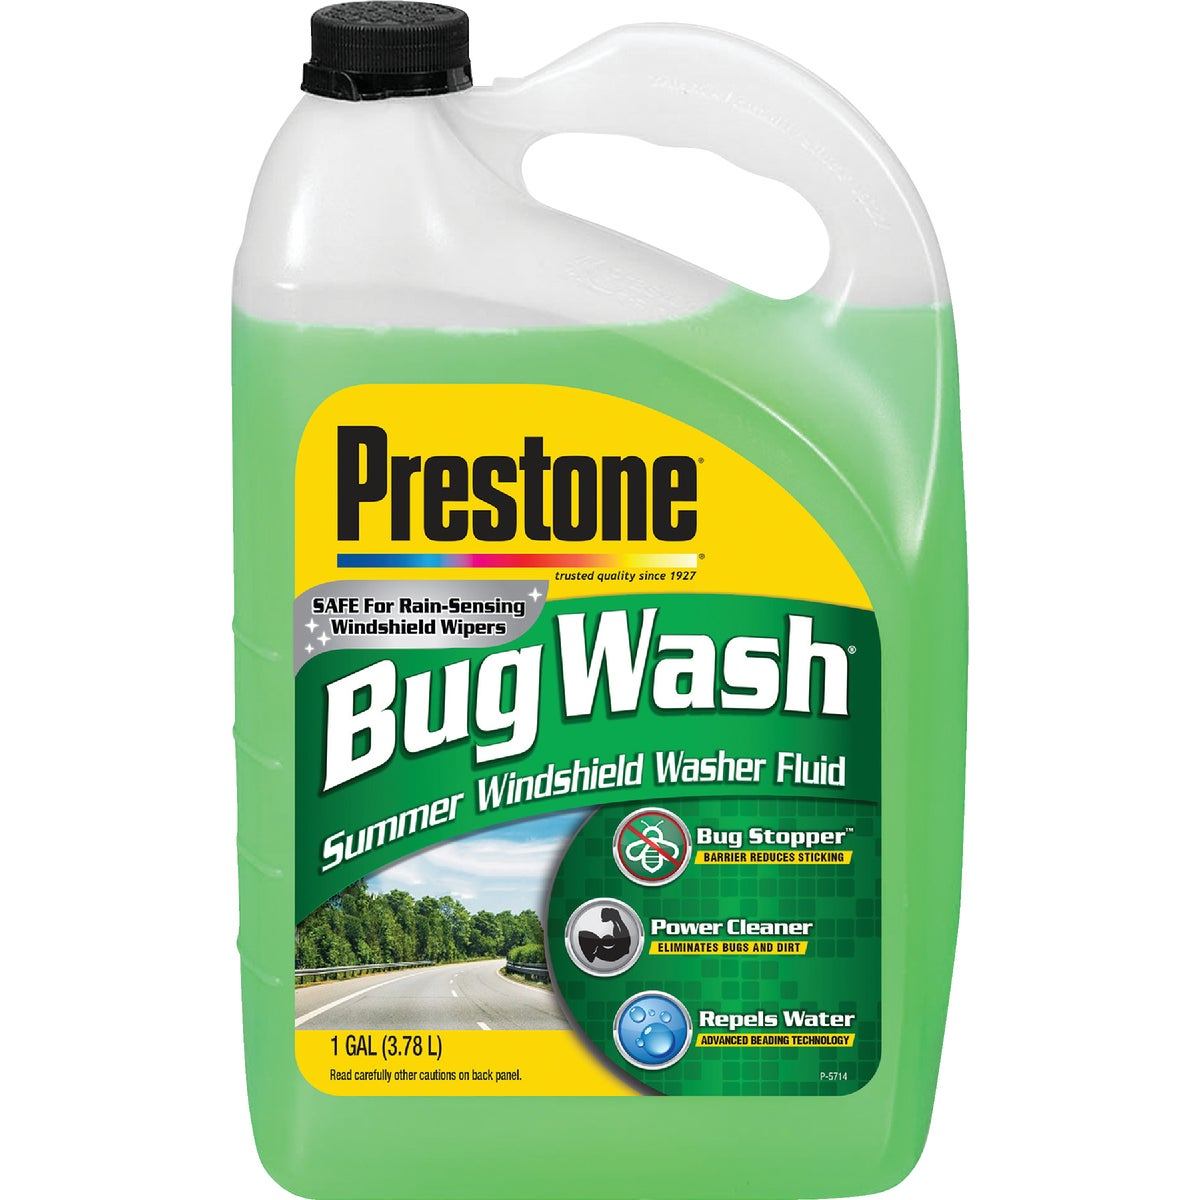 BUGWASH WINDSHIELD WASH